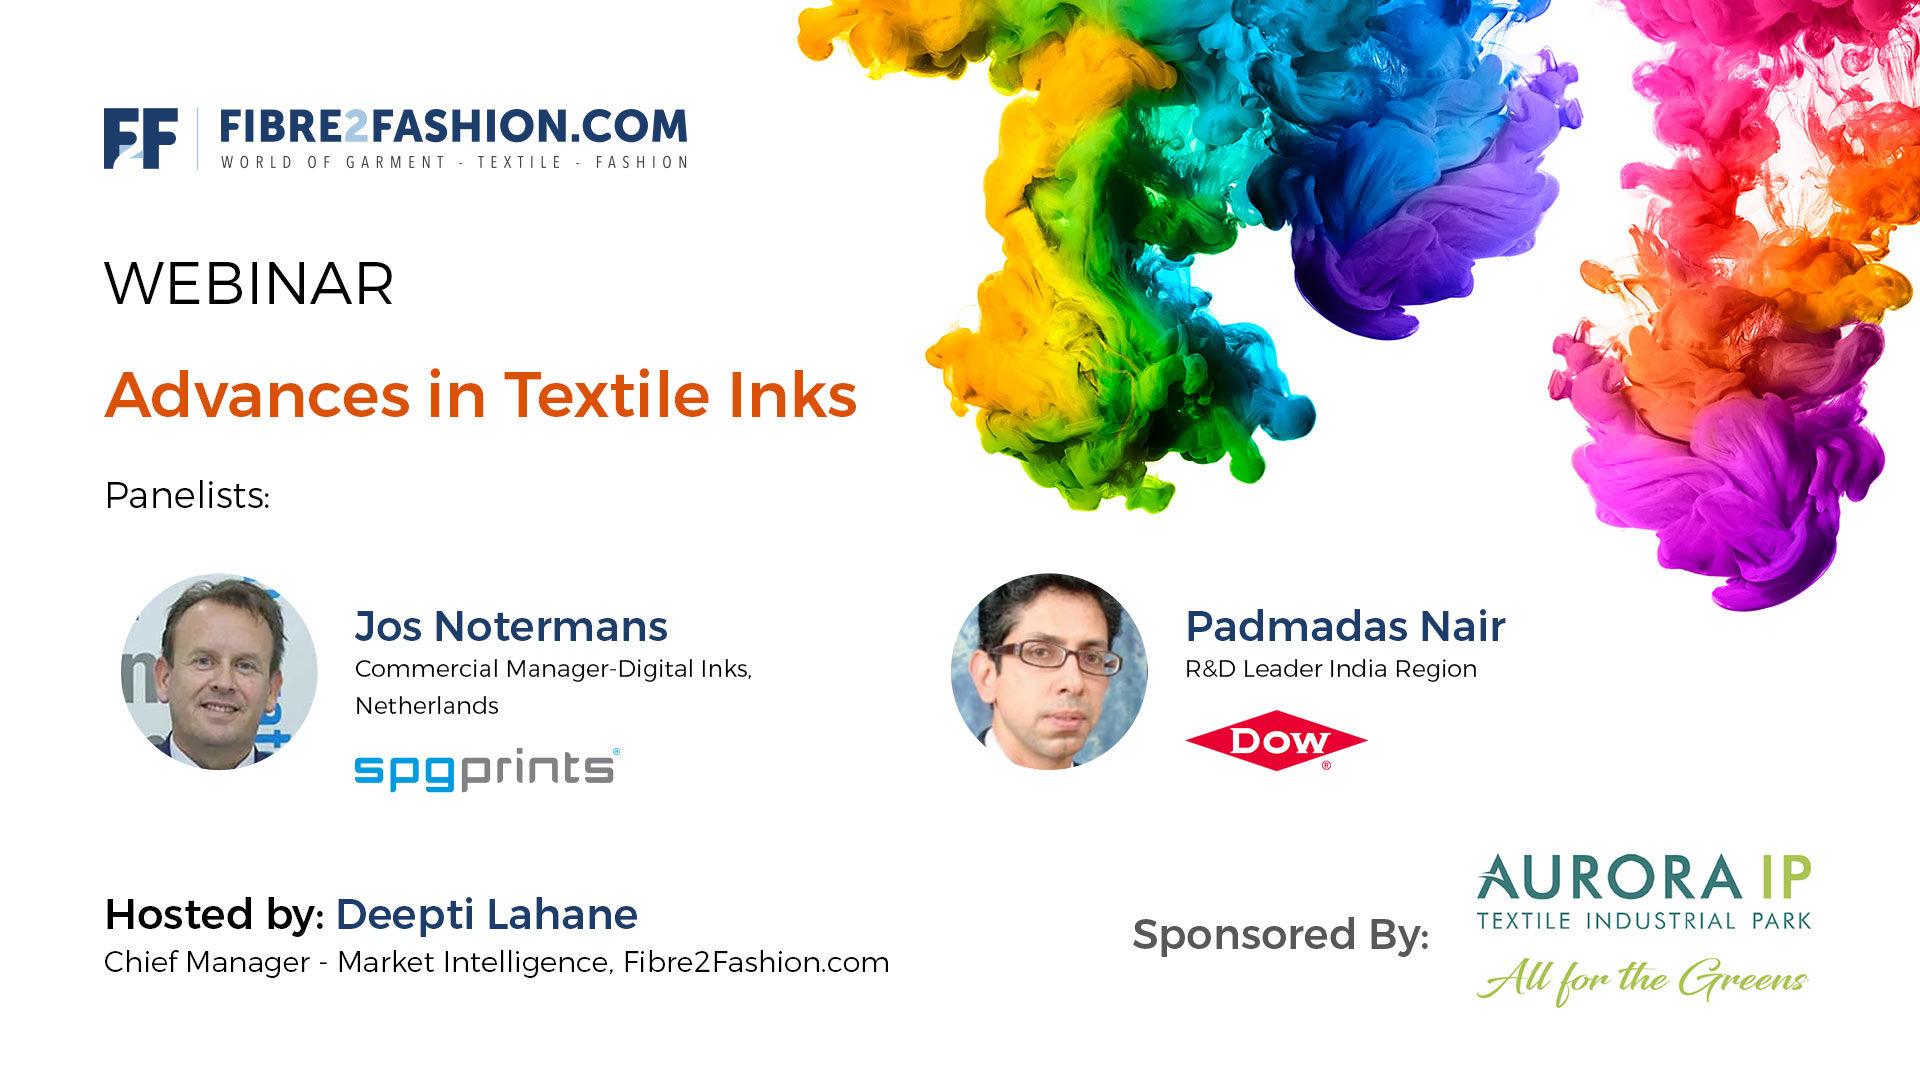 Advances in Textile Inks